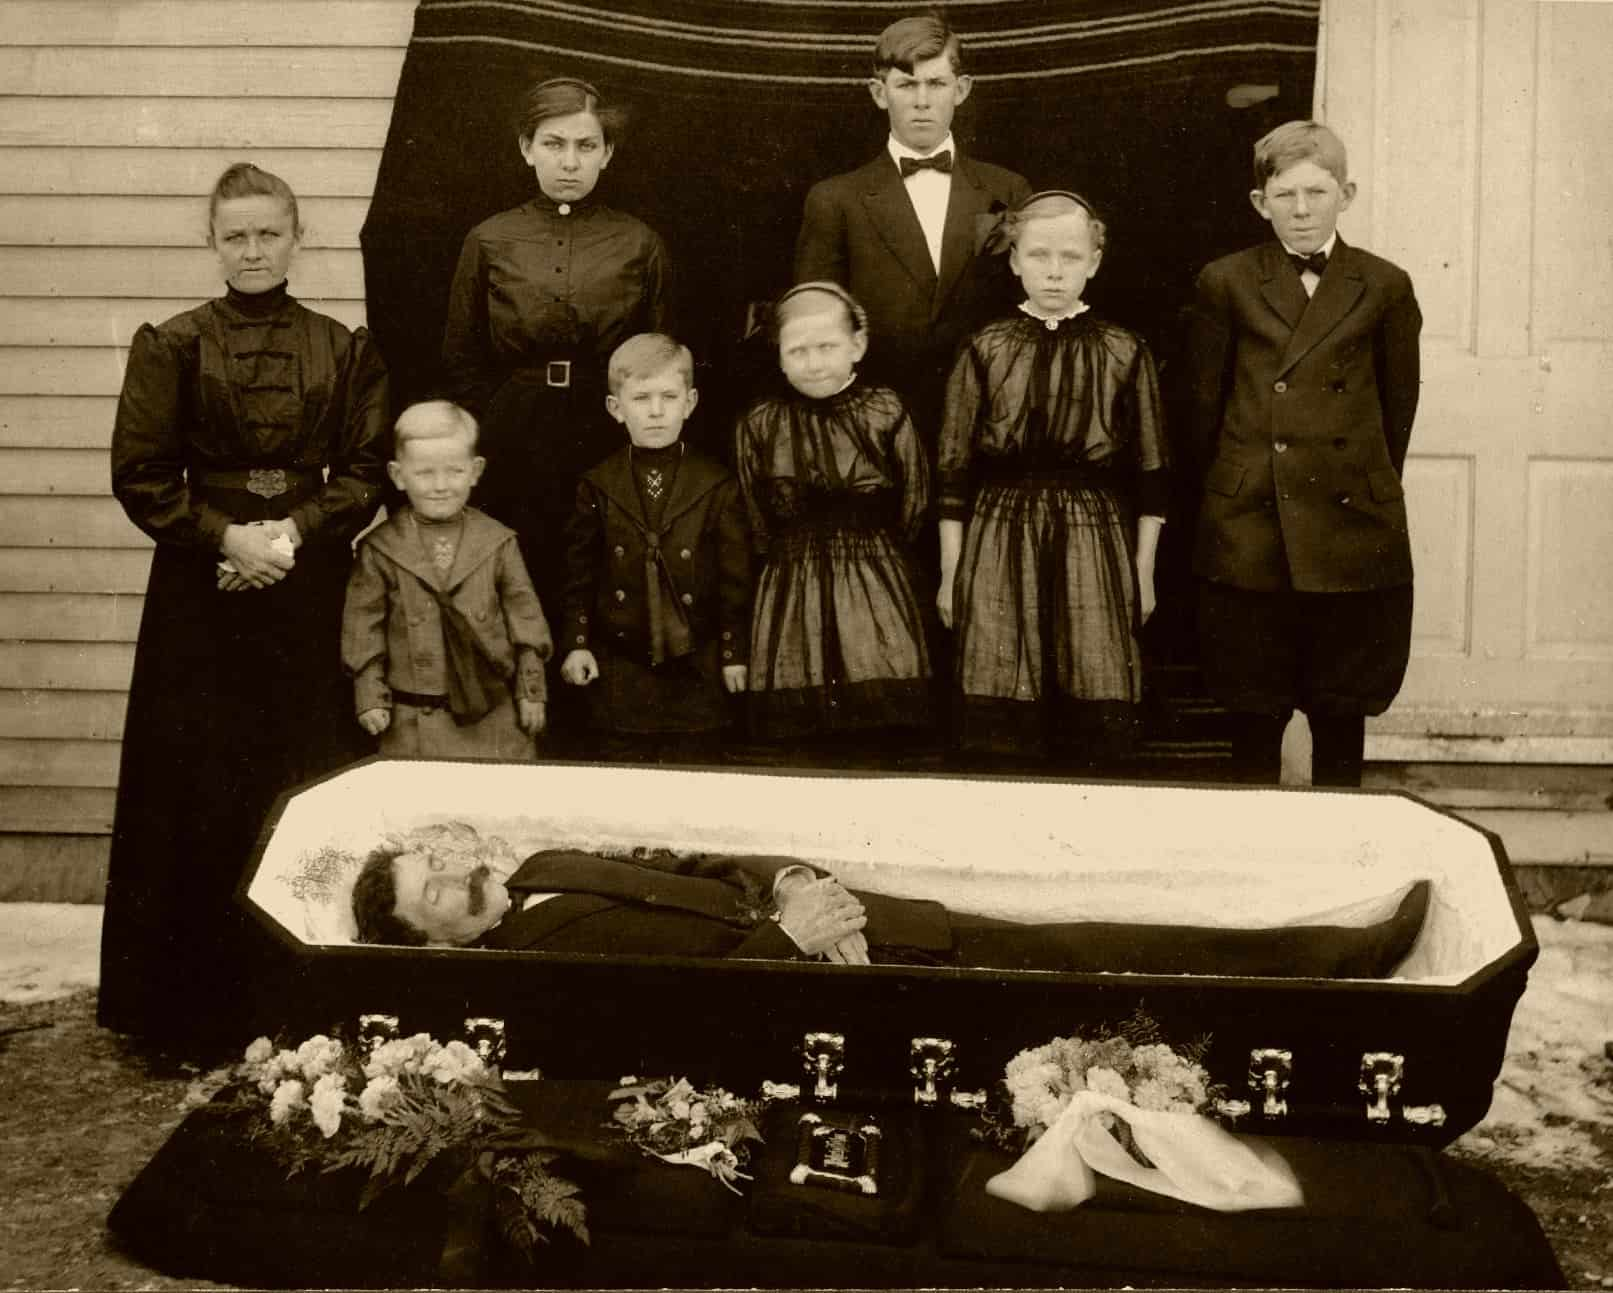 Funeral Etiquette What To Wear What To Do Gentlemans Gazette